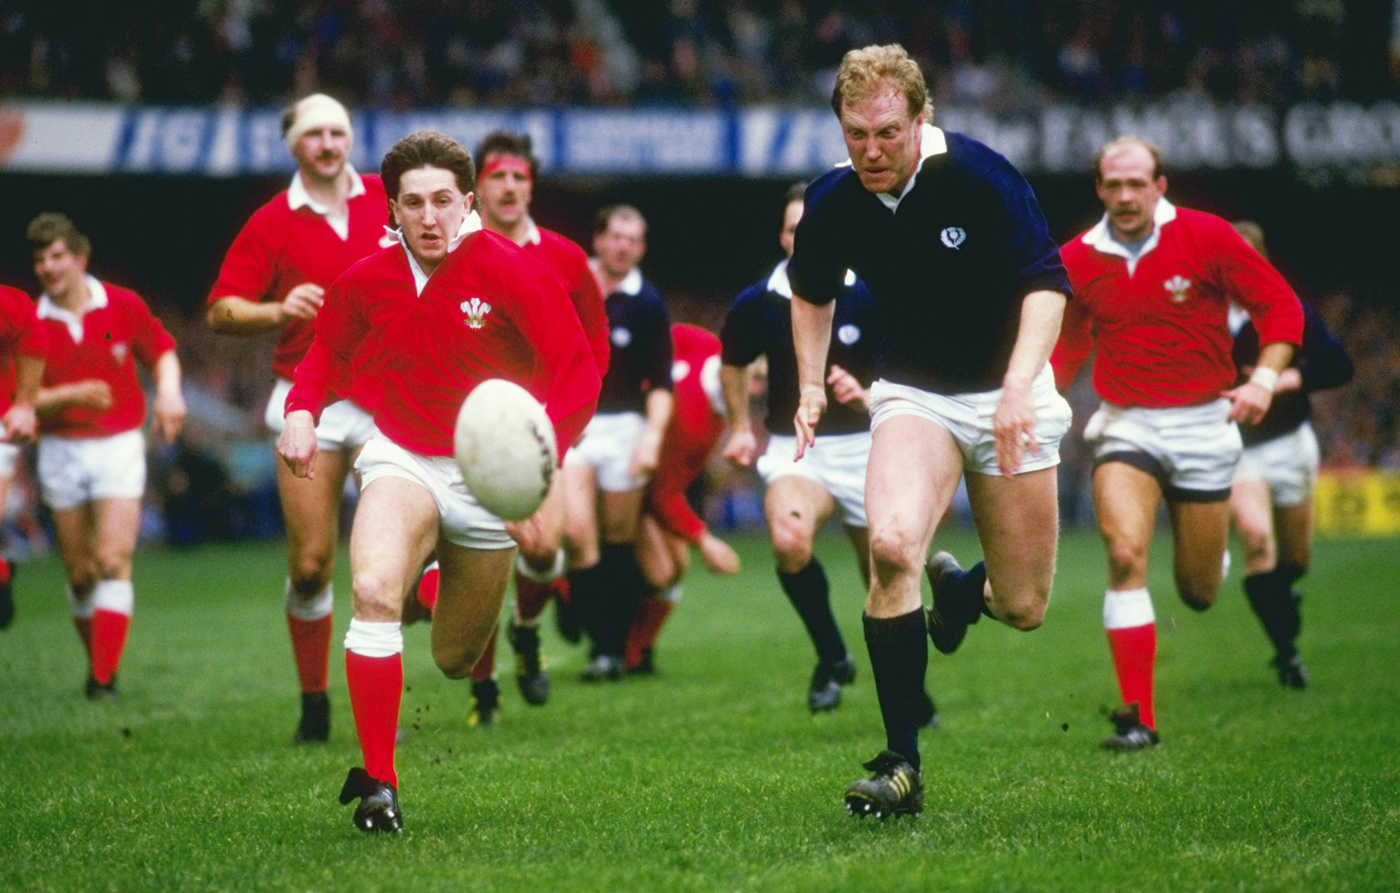 A game amongst political turmoil, Scotland vs Wales